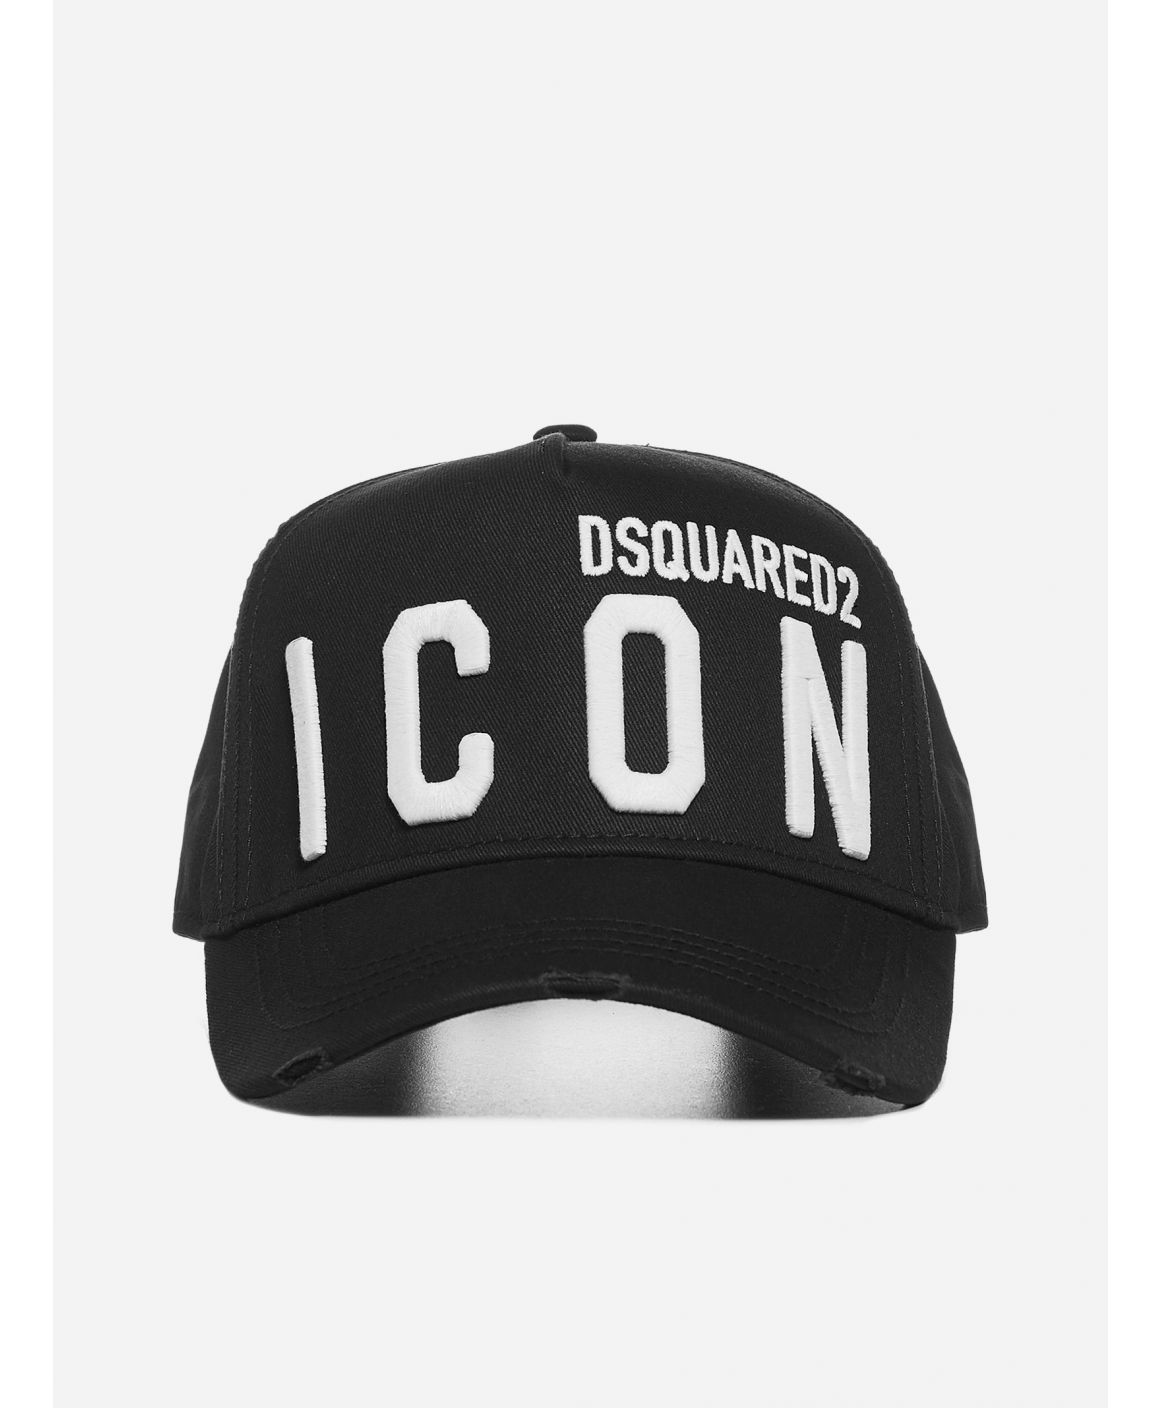 Icon logo cotton baseball cap